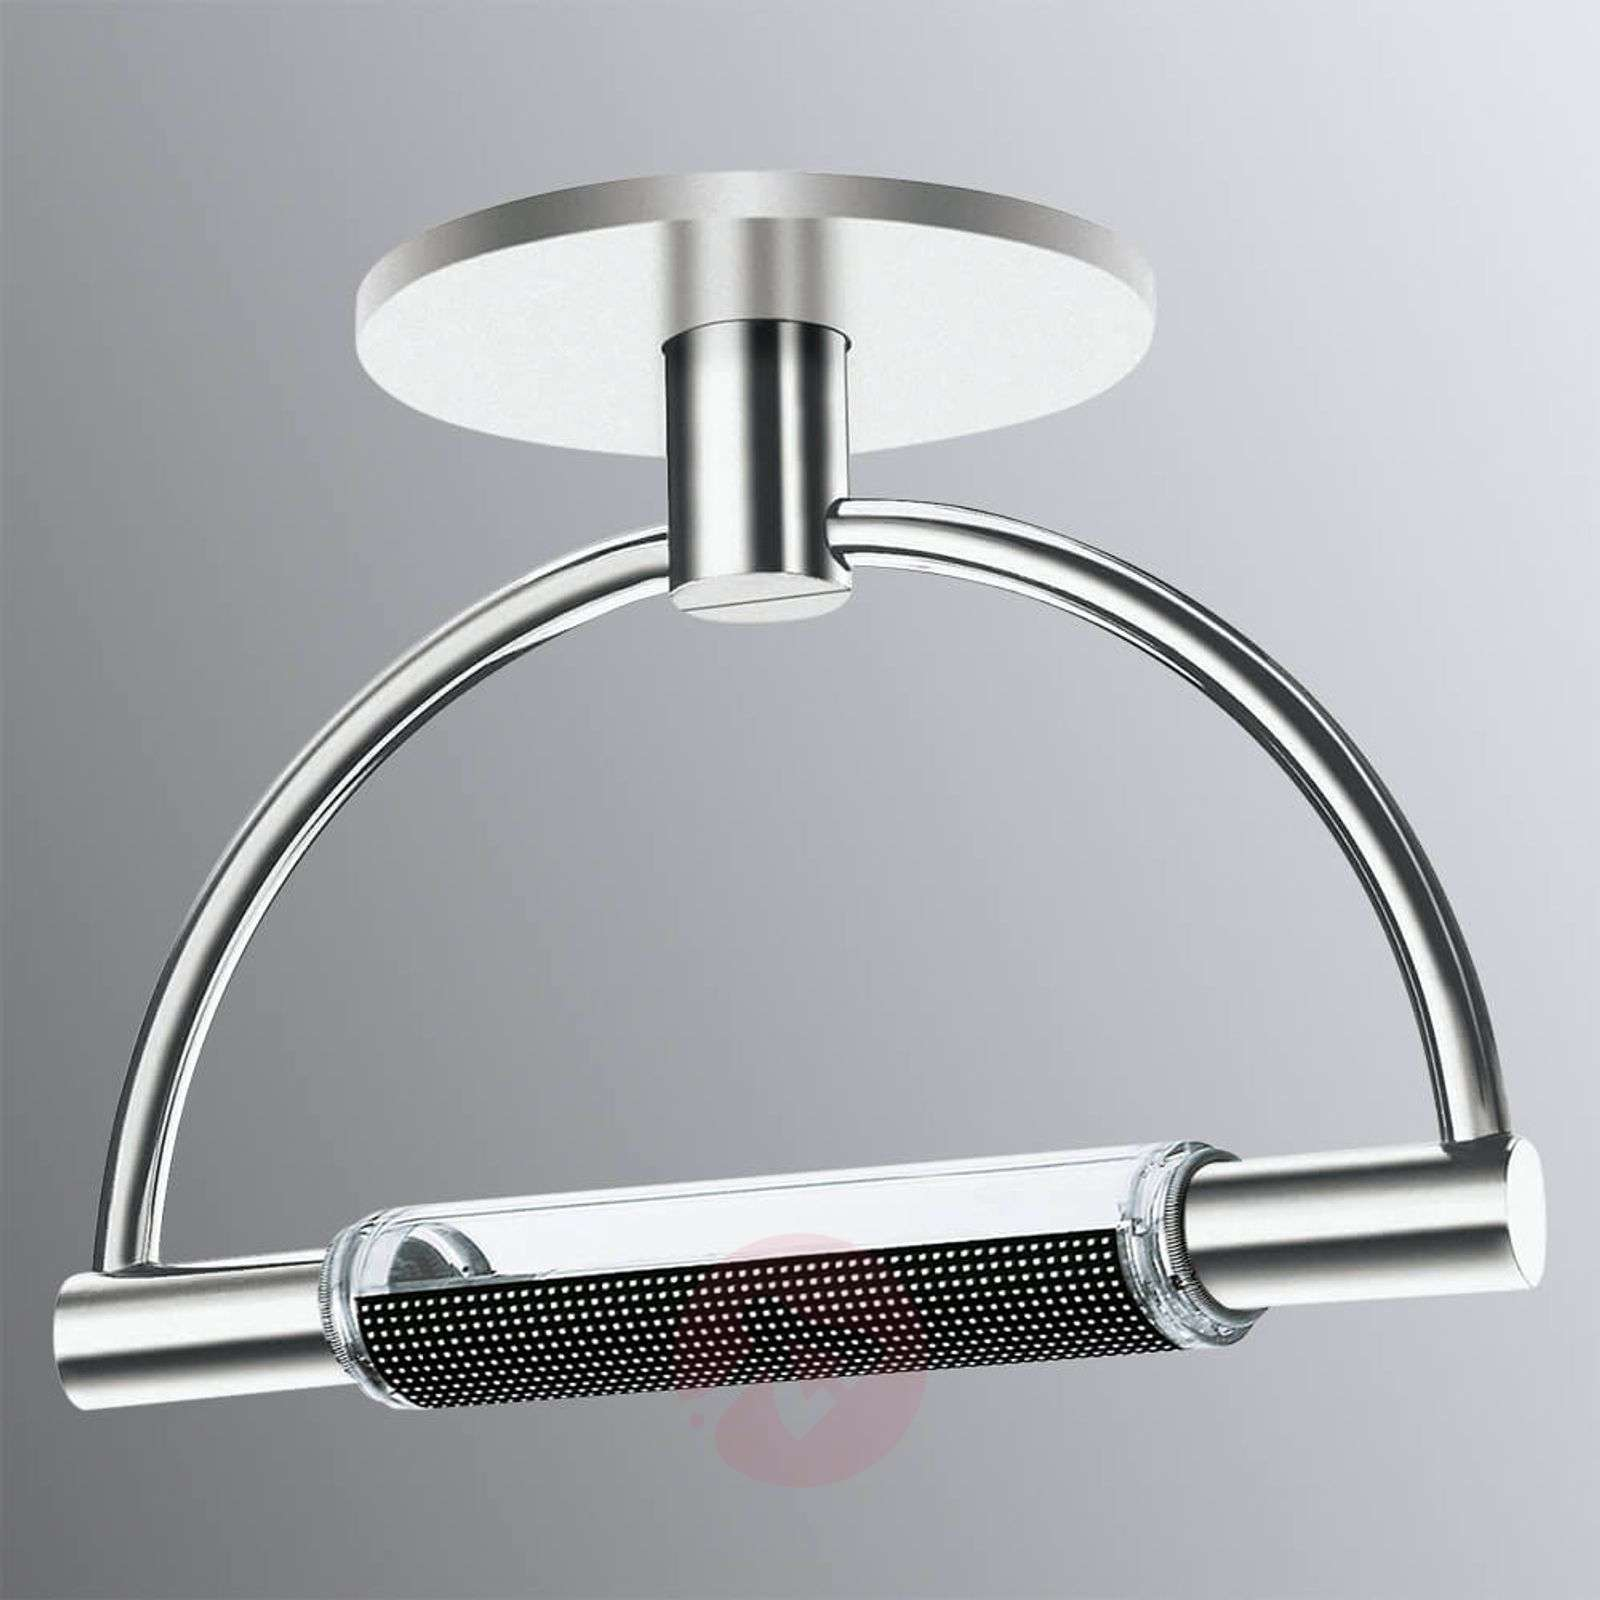 Dimmable led ceiling light gradi chrome finish lights dimmable led ceiling light gradi chrome finish 2028011 01 aloadofball Images